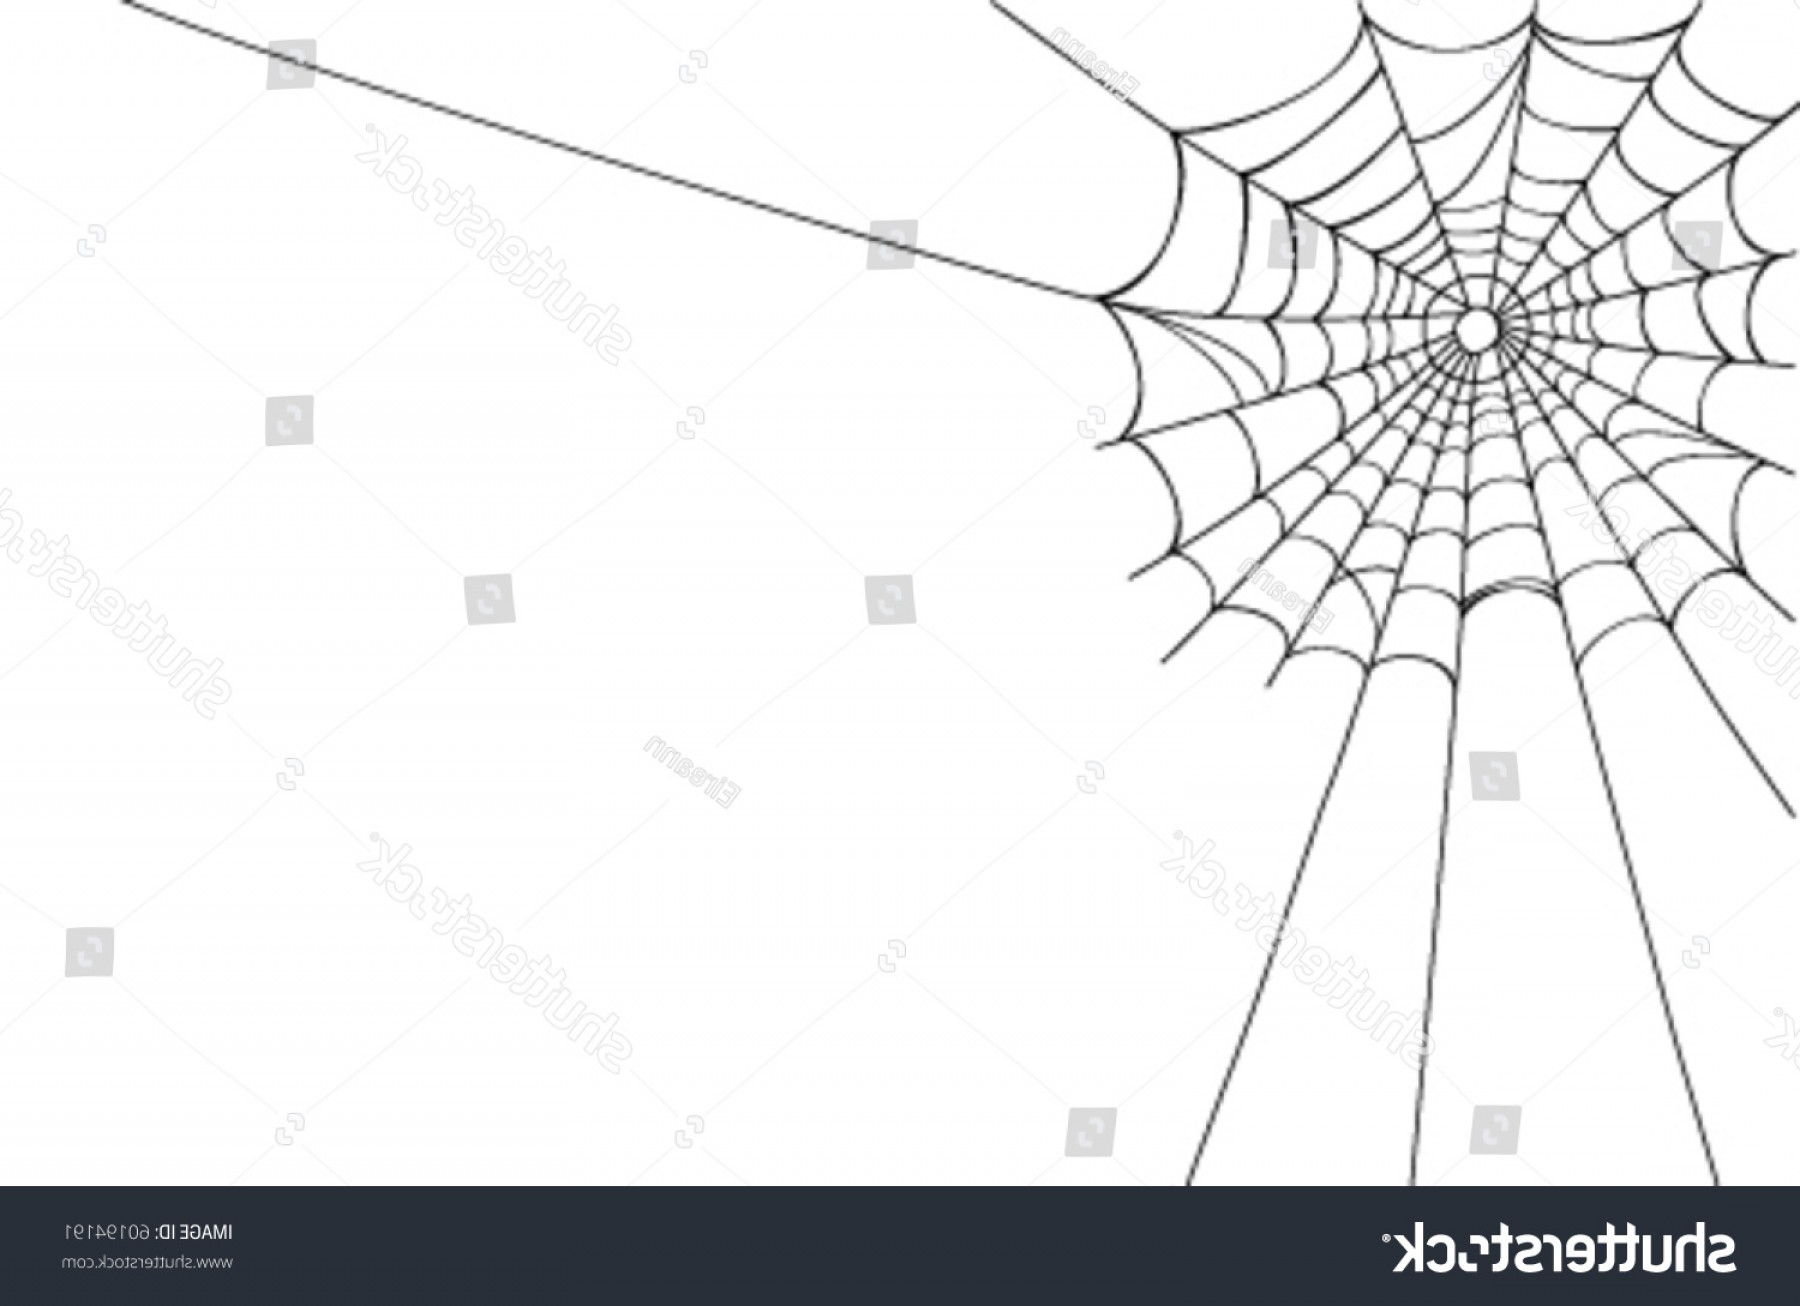 1800x1306 Creepy Spider Web Corner Vector Illustration Rongholland